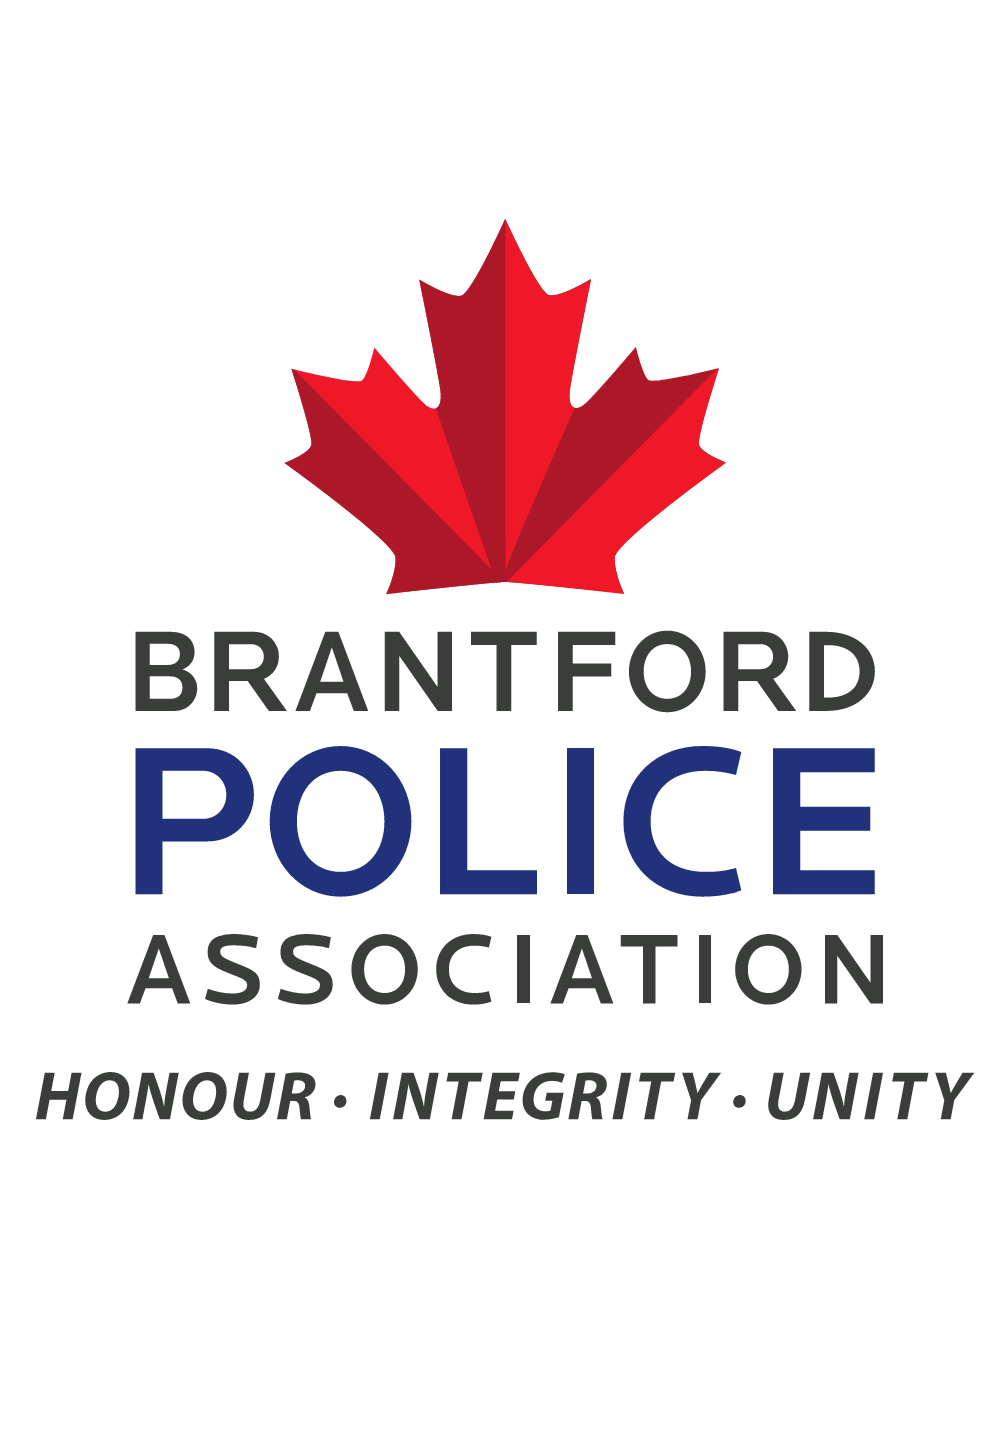 Btfd Police A logo 2016.png